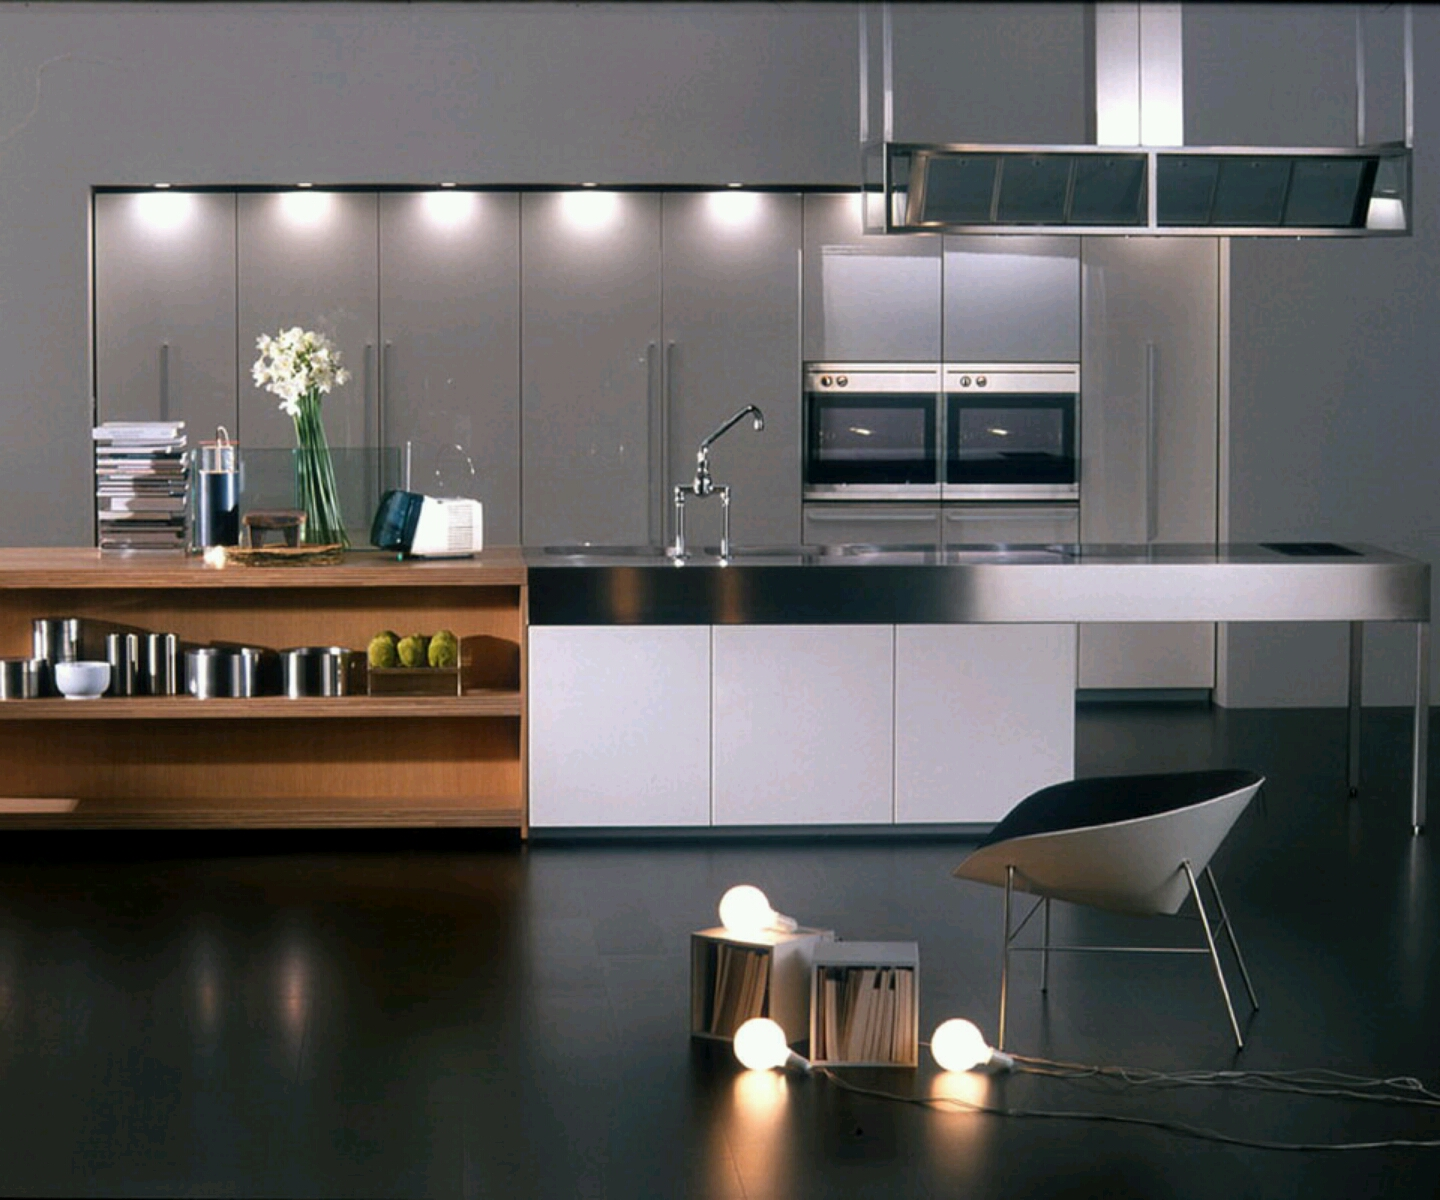 New home designs latest.: Modern kitchen designs ideas.